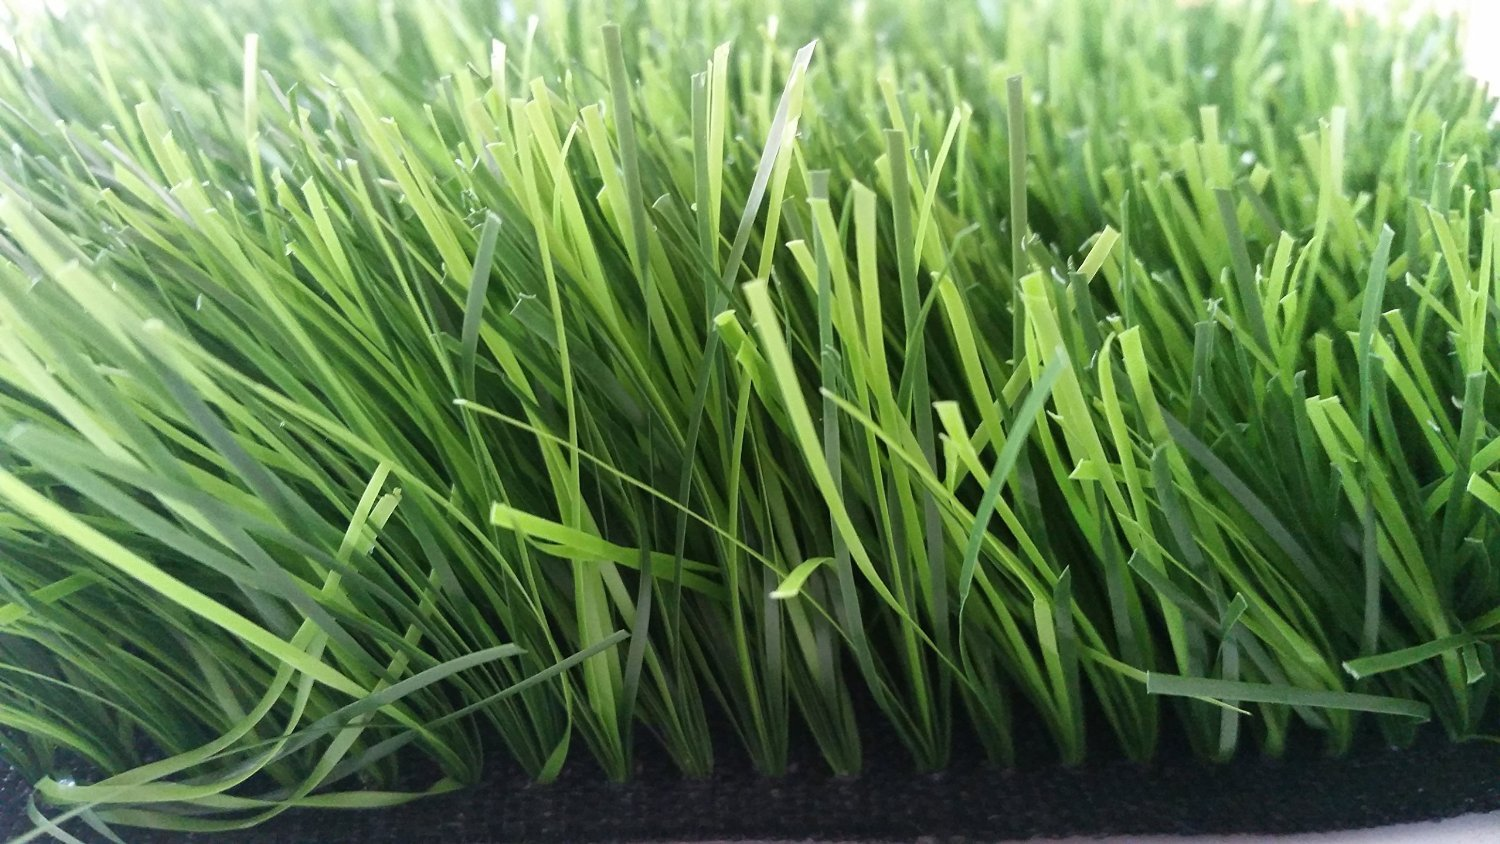 Zen Garden Tall, Premium Synthetic Grass Rubber Backed with Drainage Holes, Blade Height 2.4'' (60mm), 73 oz/sq. yard, 12 ft x 10 ft